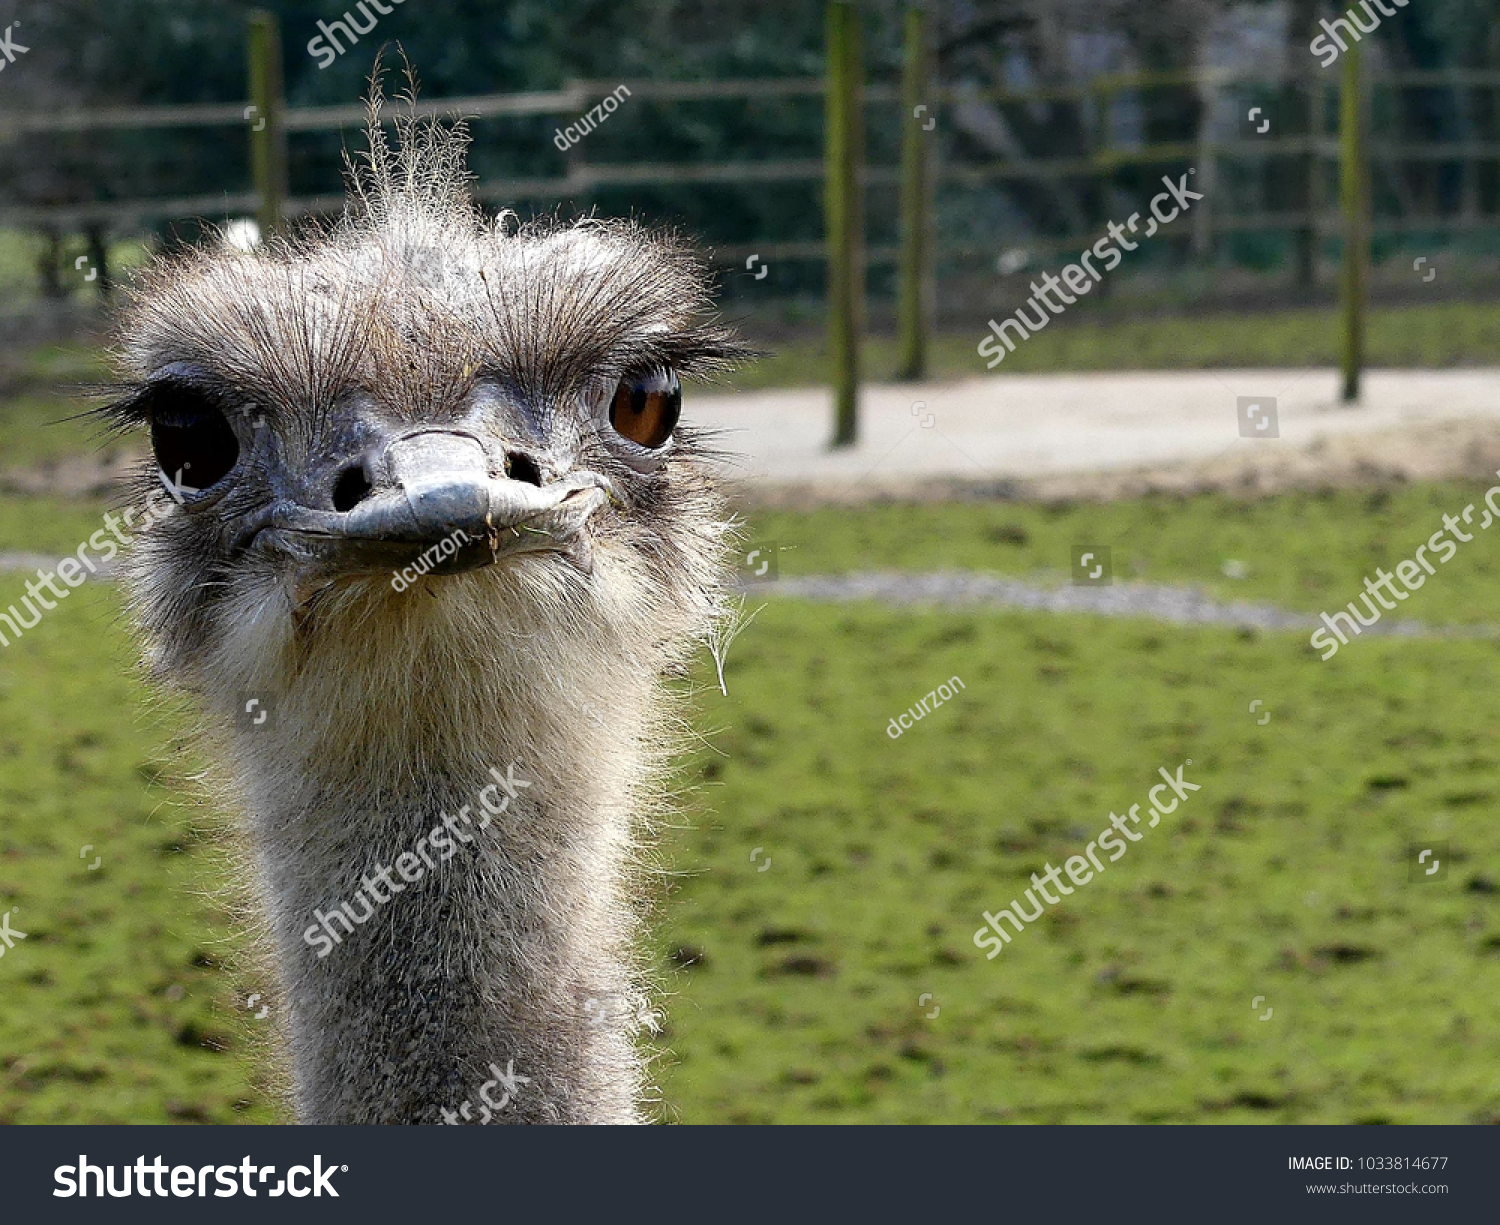 stock-photo-an-ostrich-staring-straight-